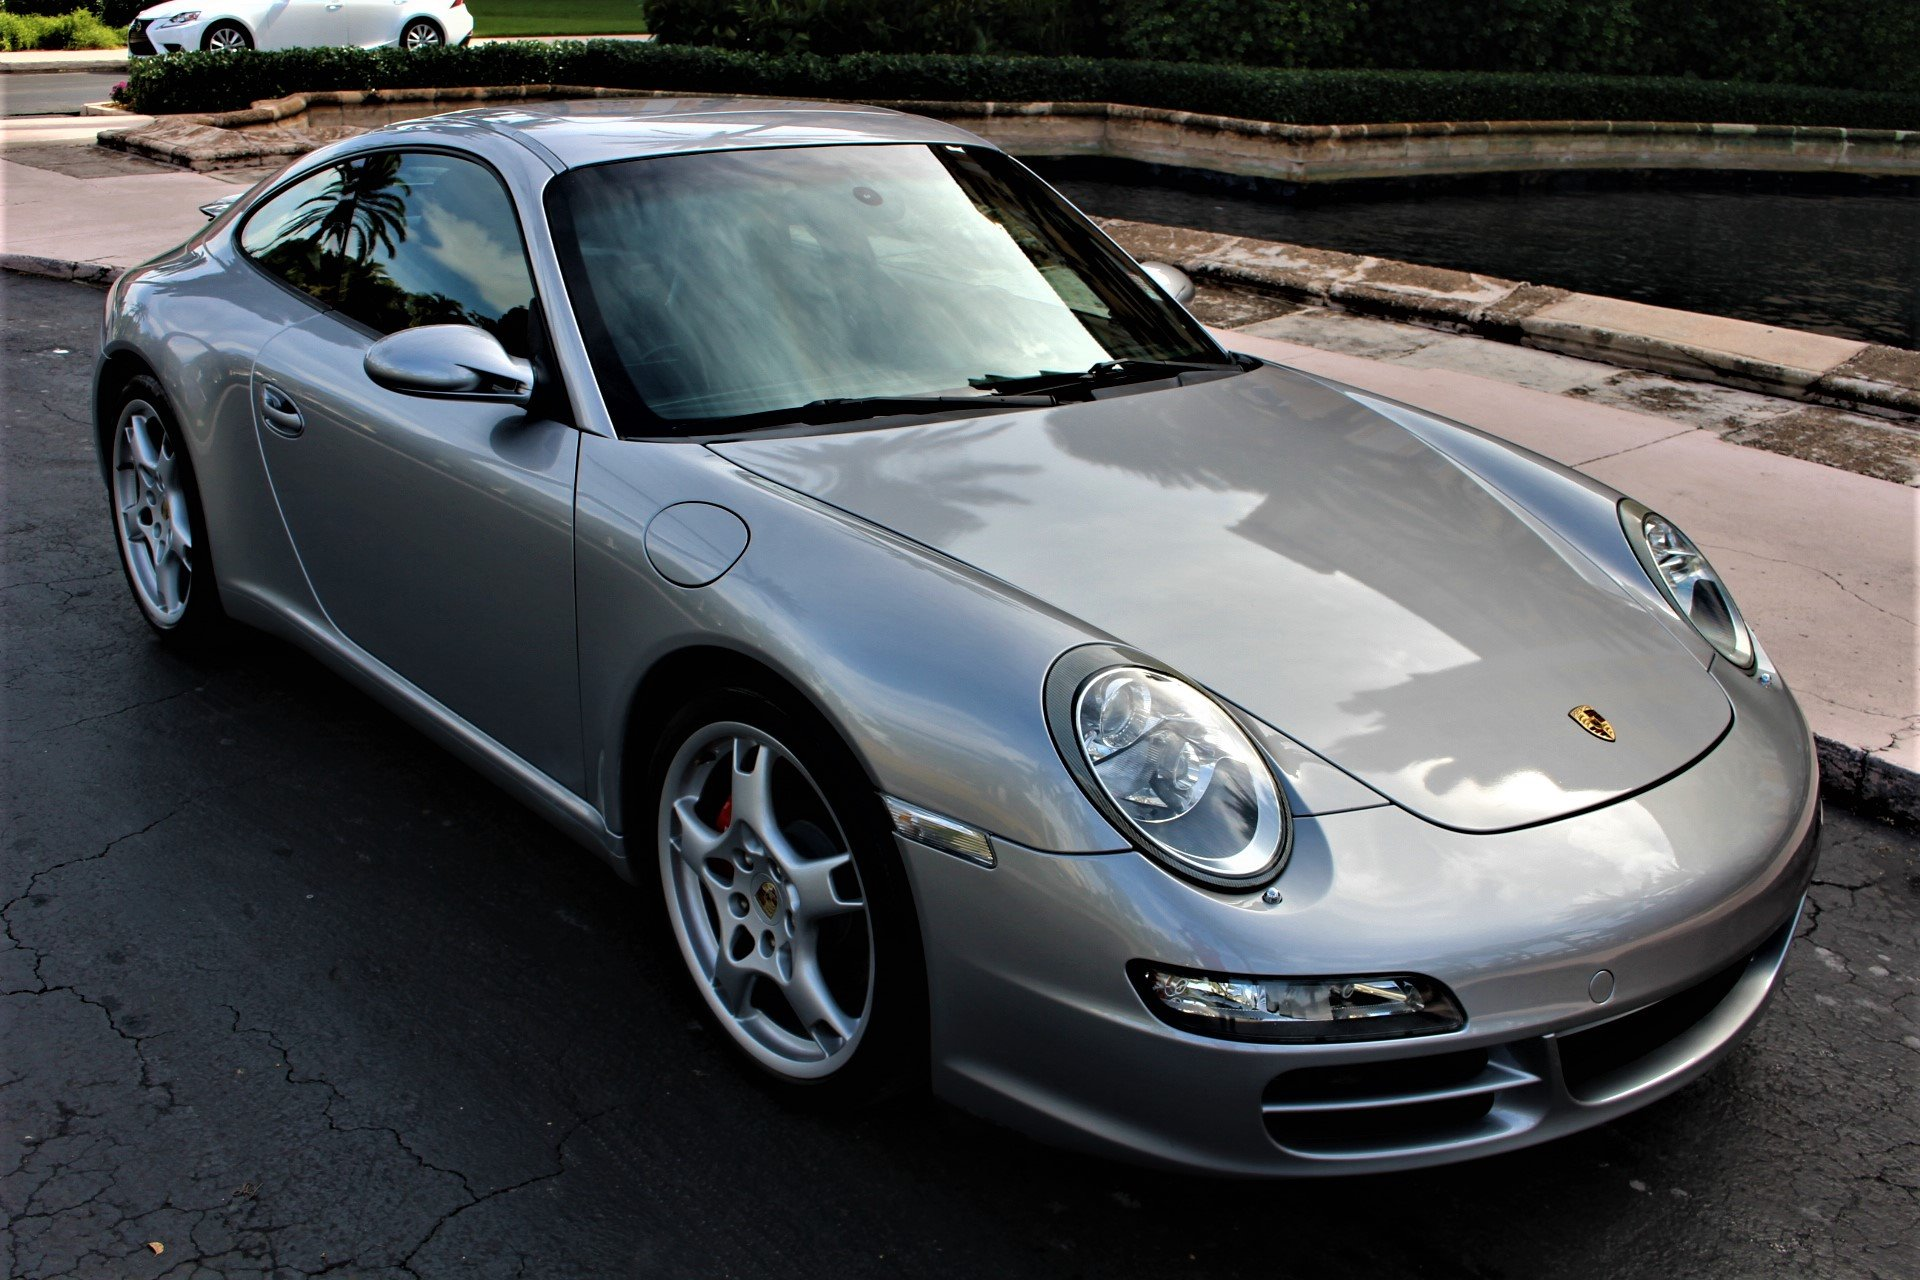 Used 2005 Porsche 911 Carrera S for sale Sold at The Gables Sports Cars in Miami FL 33146 4